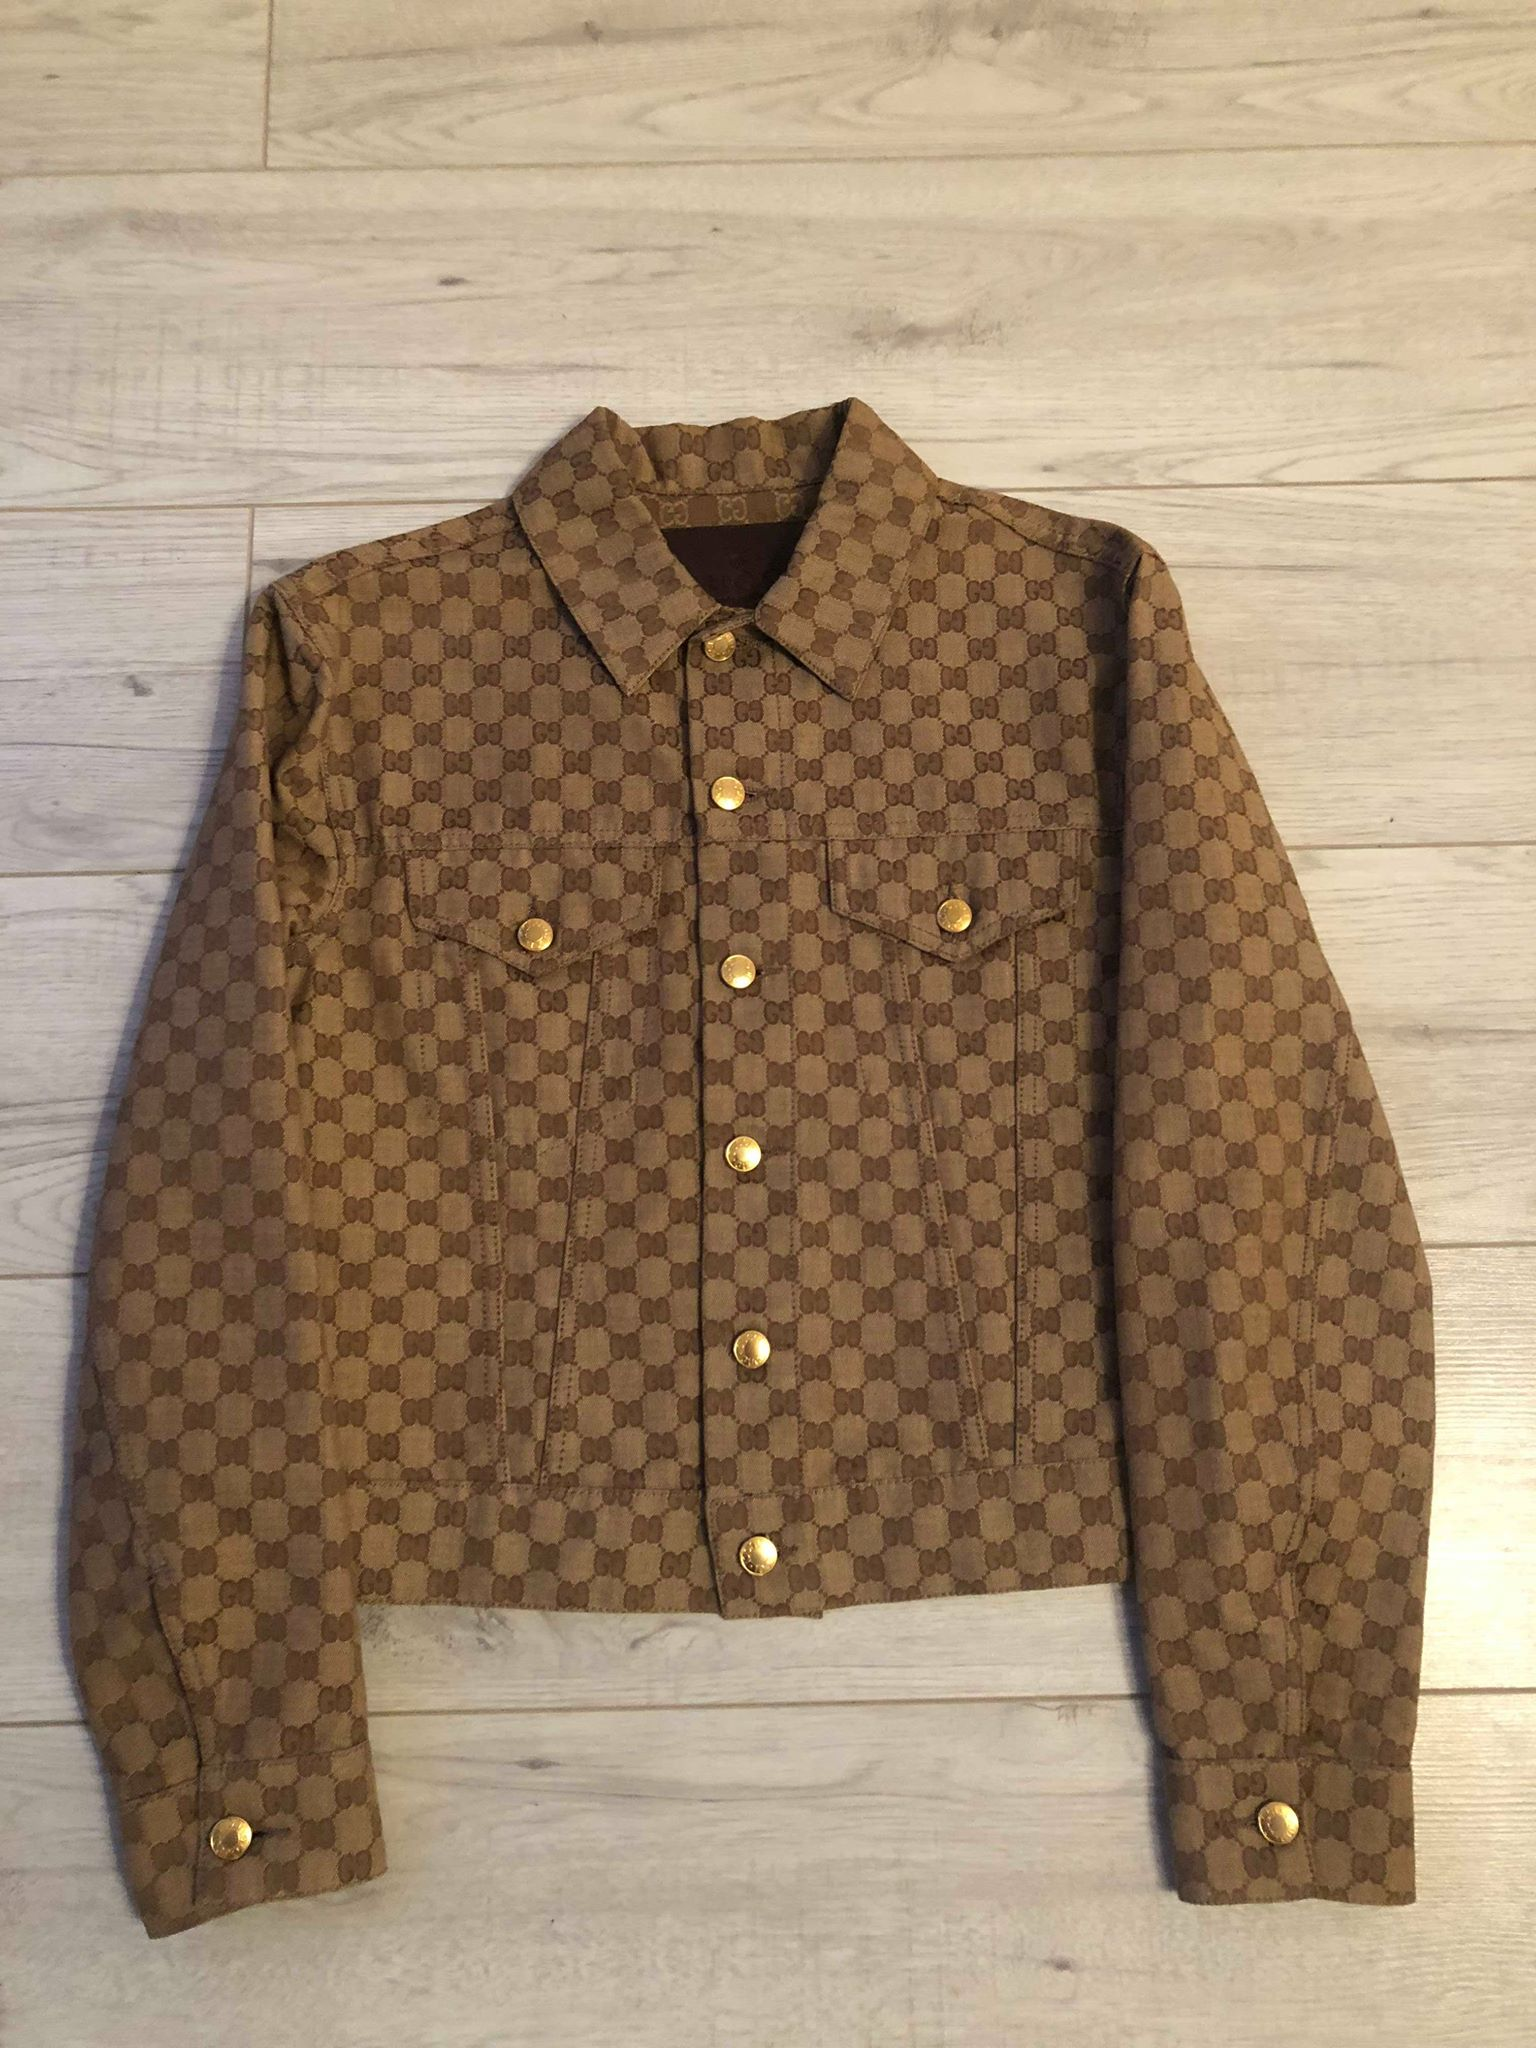 8862b4d32 Gucci Qucik Sale - Ultra Rare Vintage Gucci Gg Monogram Denim Jacket ...